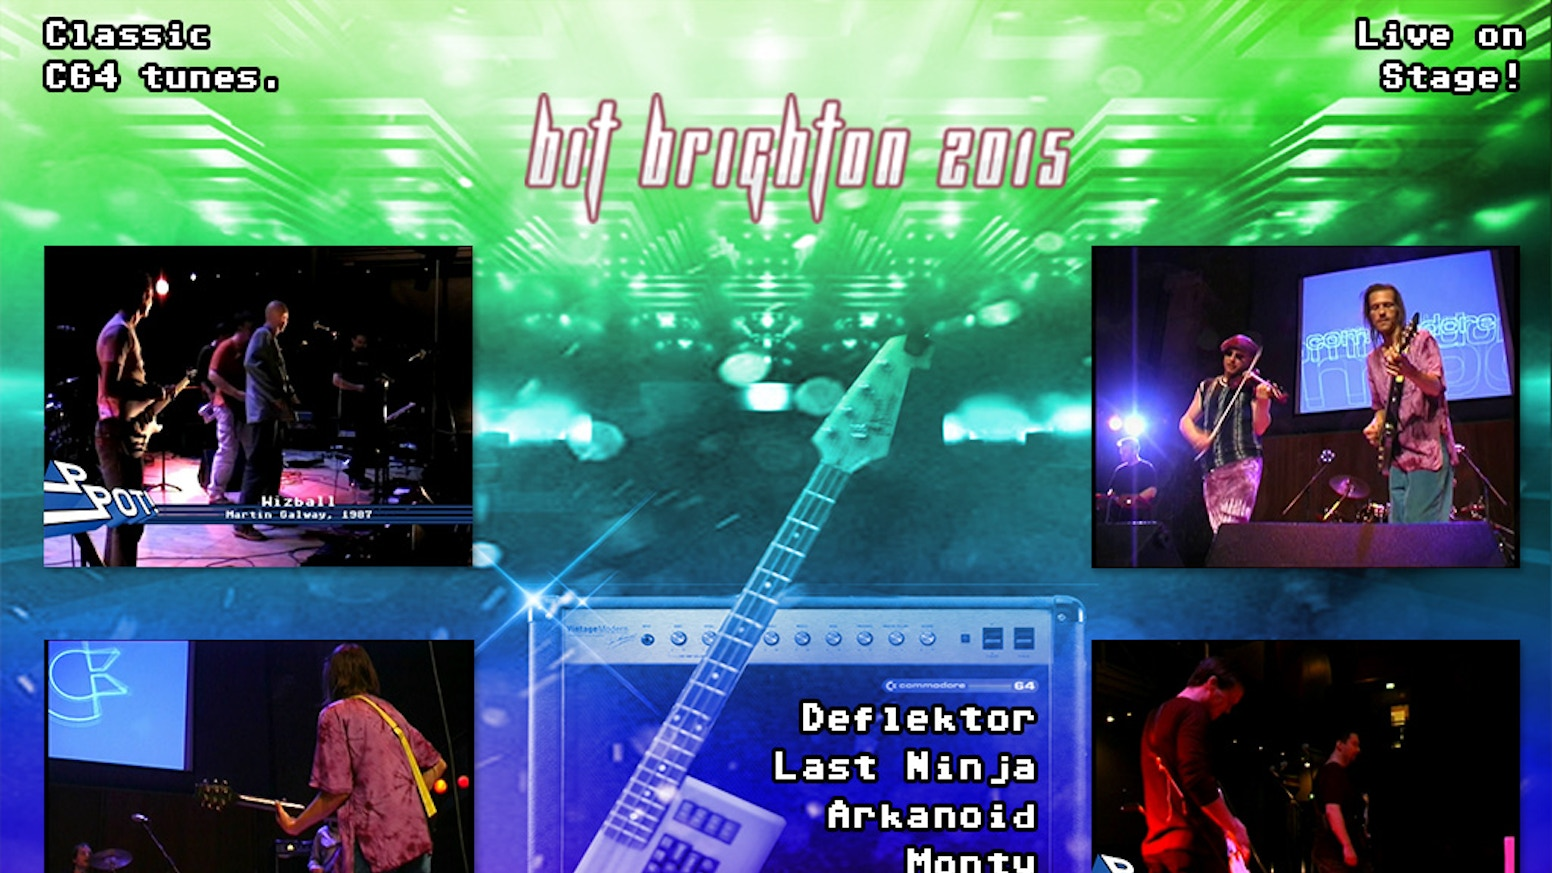 Back in Time Live 2015 Brighton: a live concert of C64 music hosted by Ben Daglish starring SID80s, PPOT, Fastloaders and more.